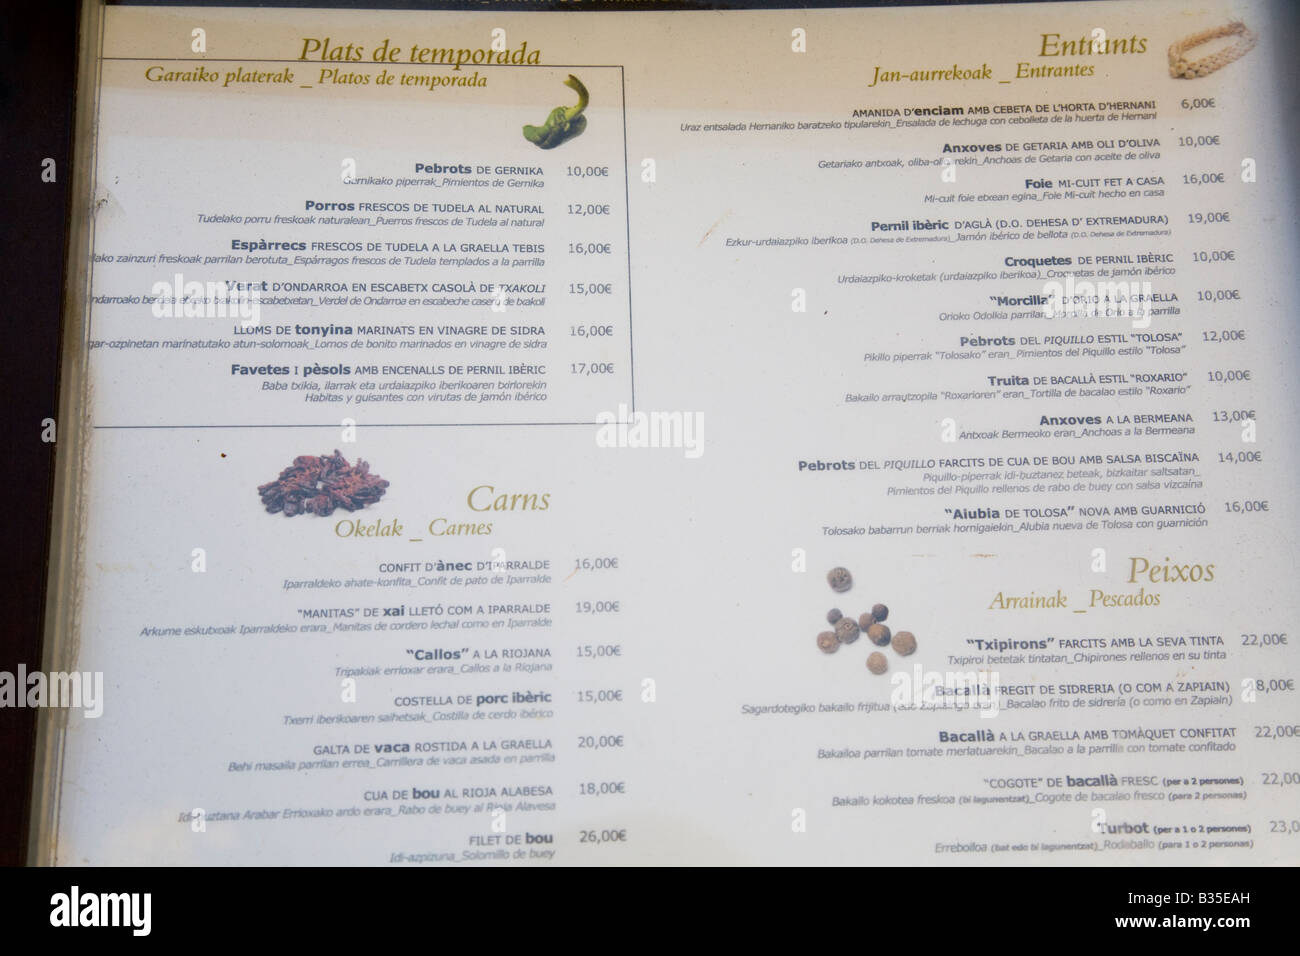 0c45c7d8 SPAIN Barcelona Restaurant menu with listings in Euskara Spanish and  Catalan languages prices in Euros Sagardi